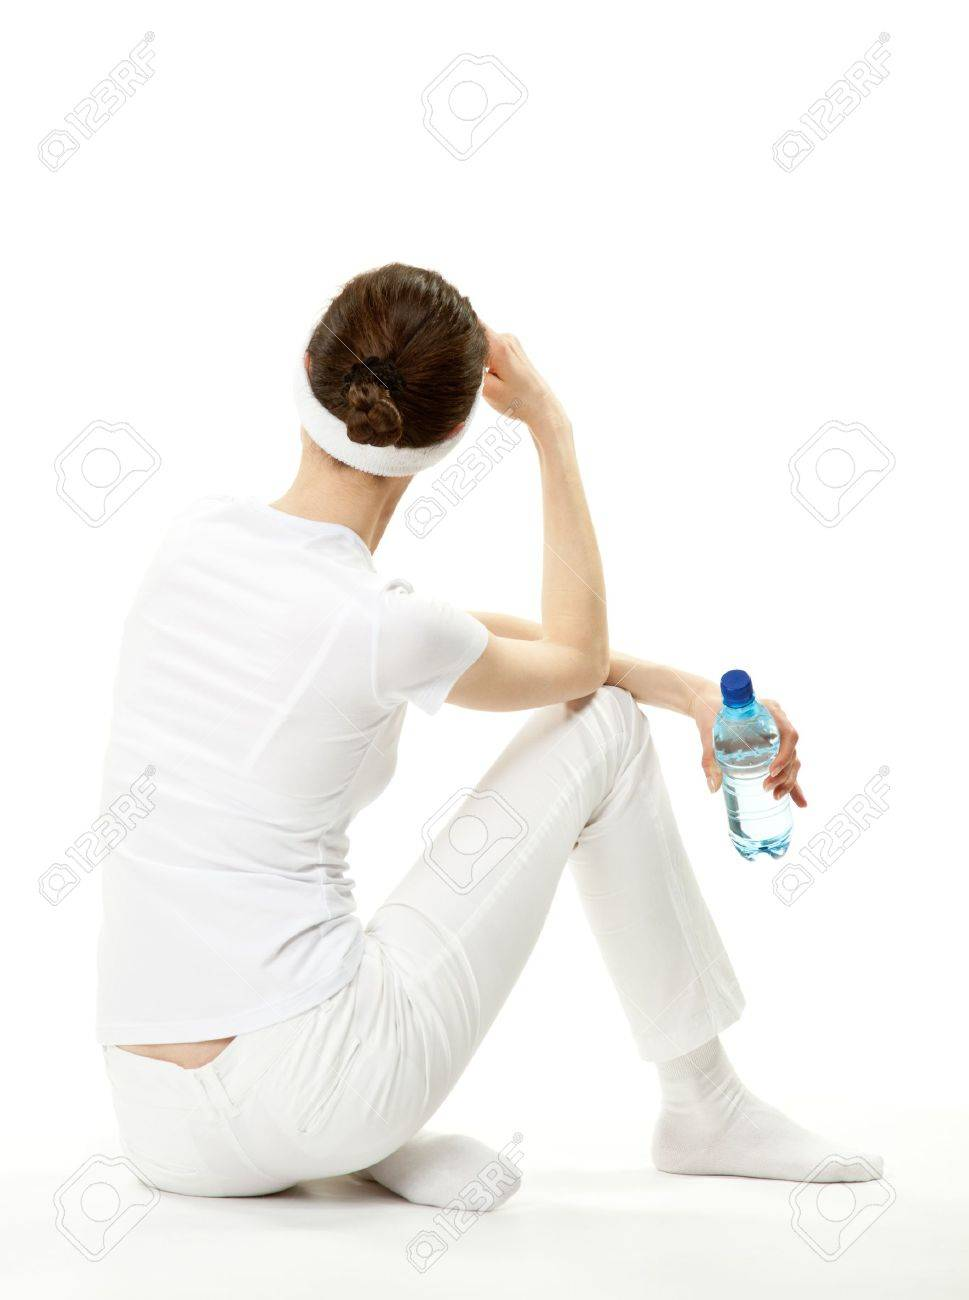 Young woman relaxing after sport; slender young woman sitting on the floor holding bottle of drinking water, rear view, white background Stock Photo - 13193054